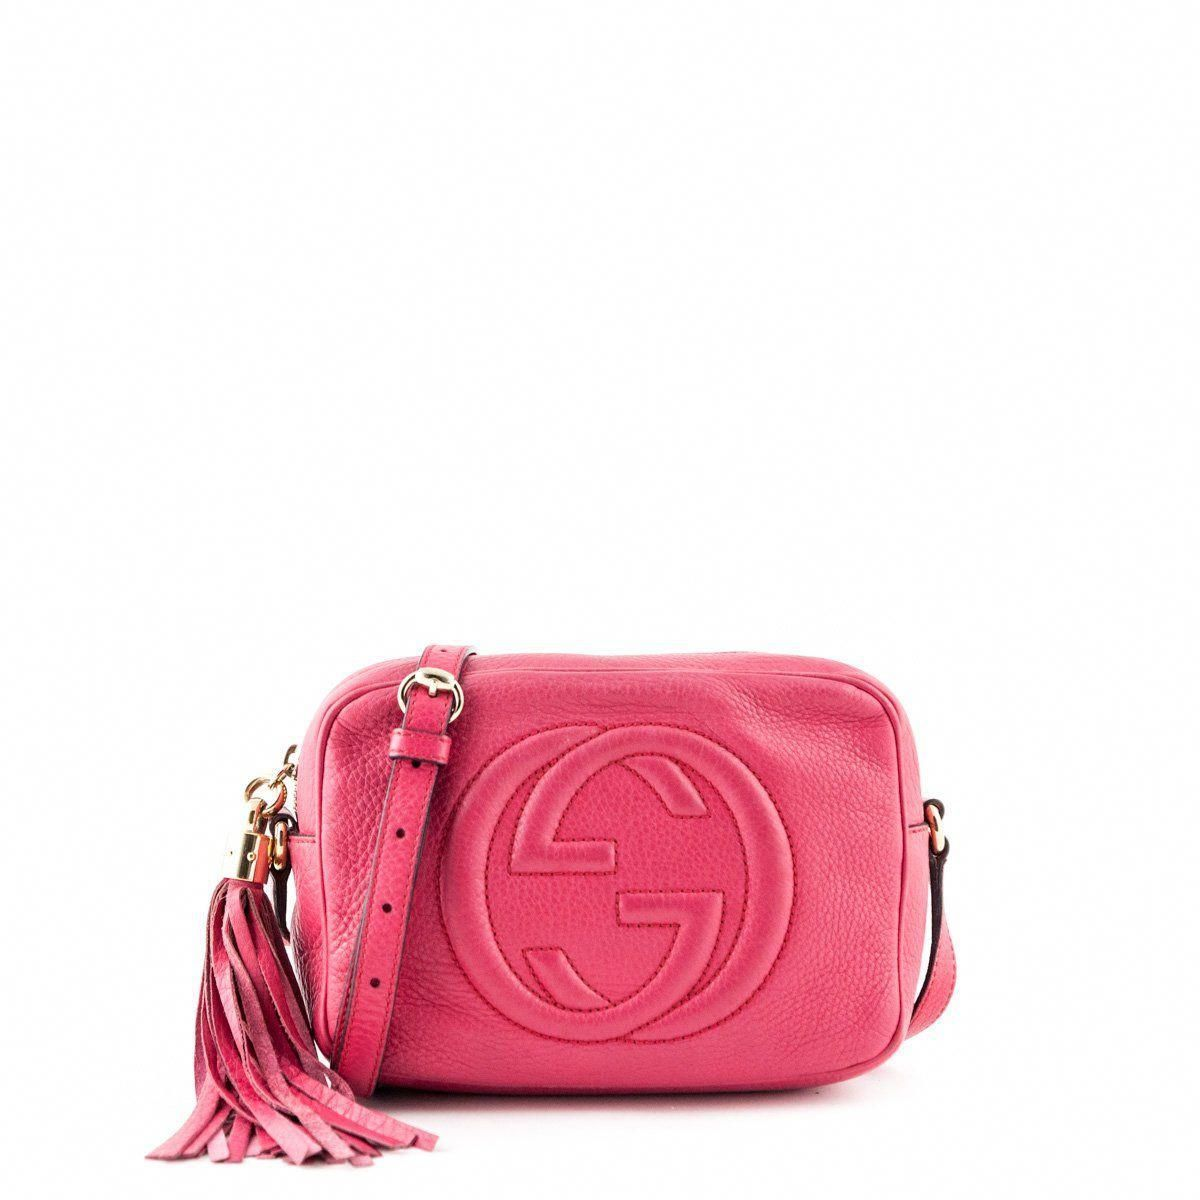 299937dfe7fc Gucci Pink Soho Disco - Luxury Consignment for Bags in Canada .